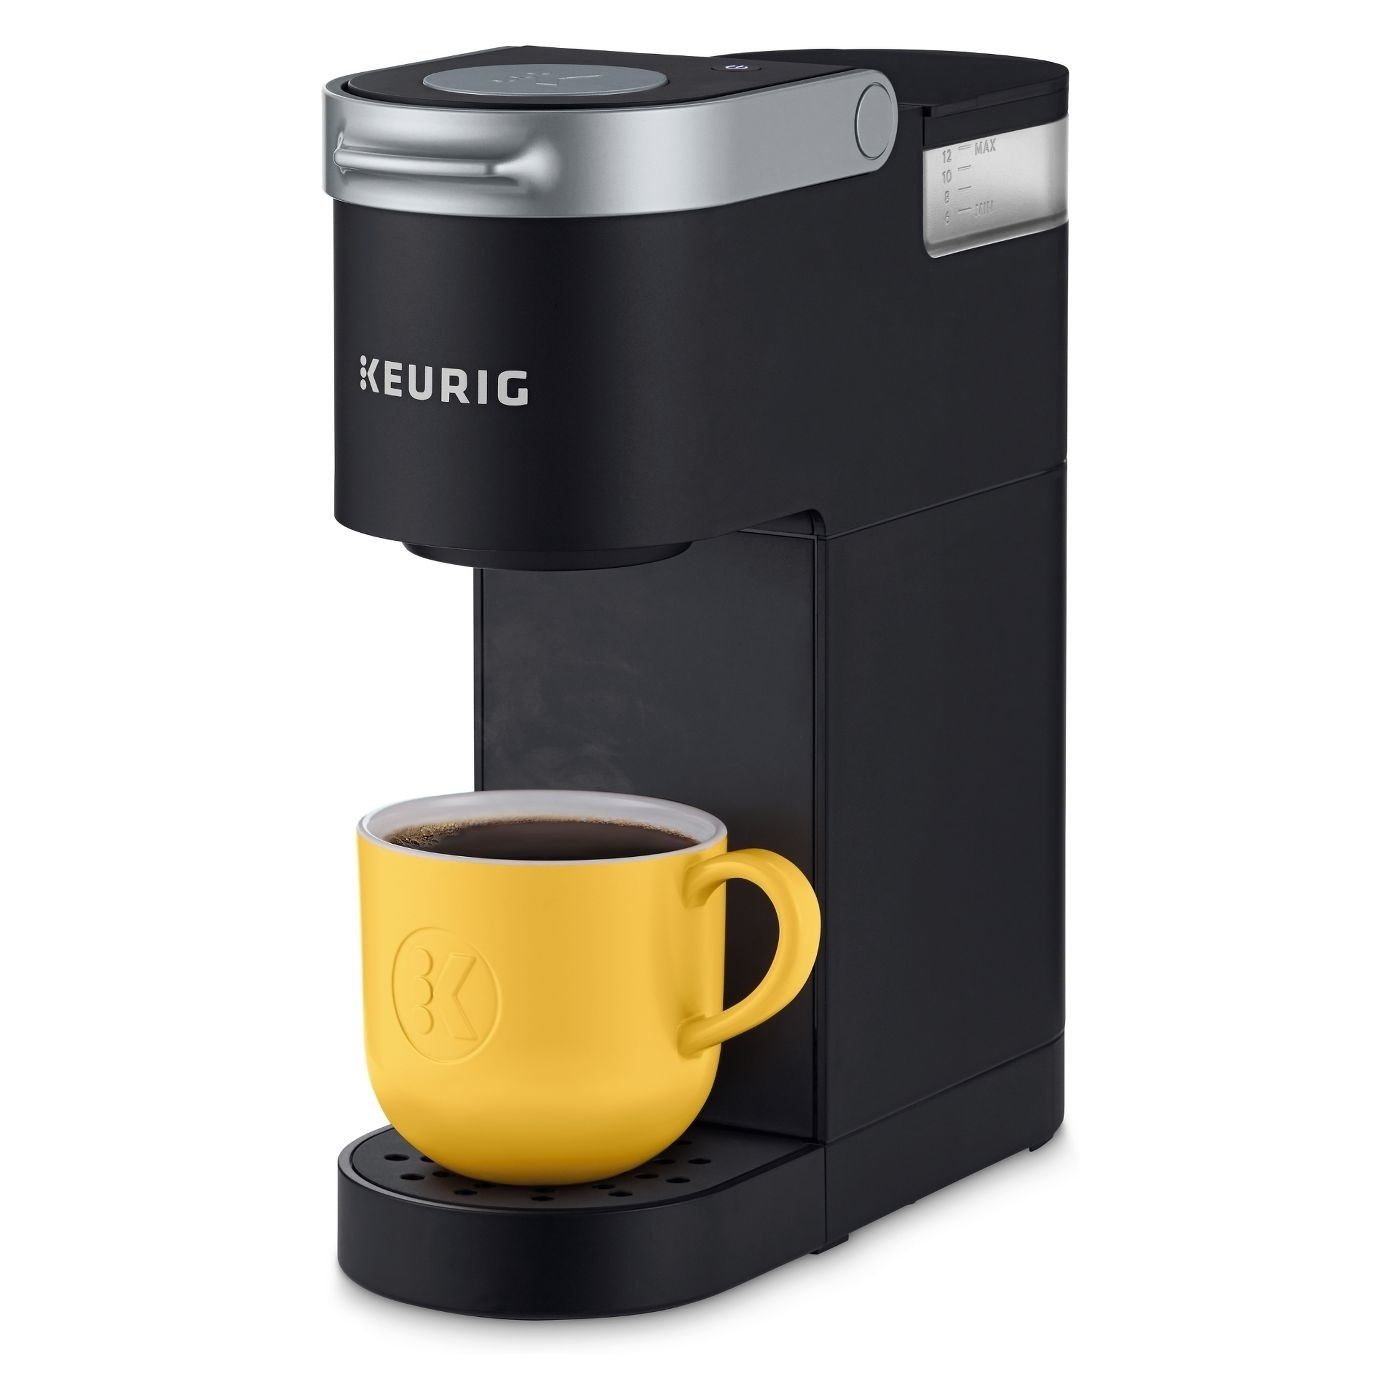 A black single serve Keurig coffee maker